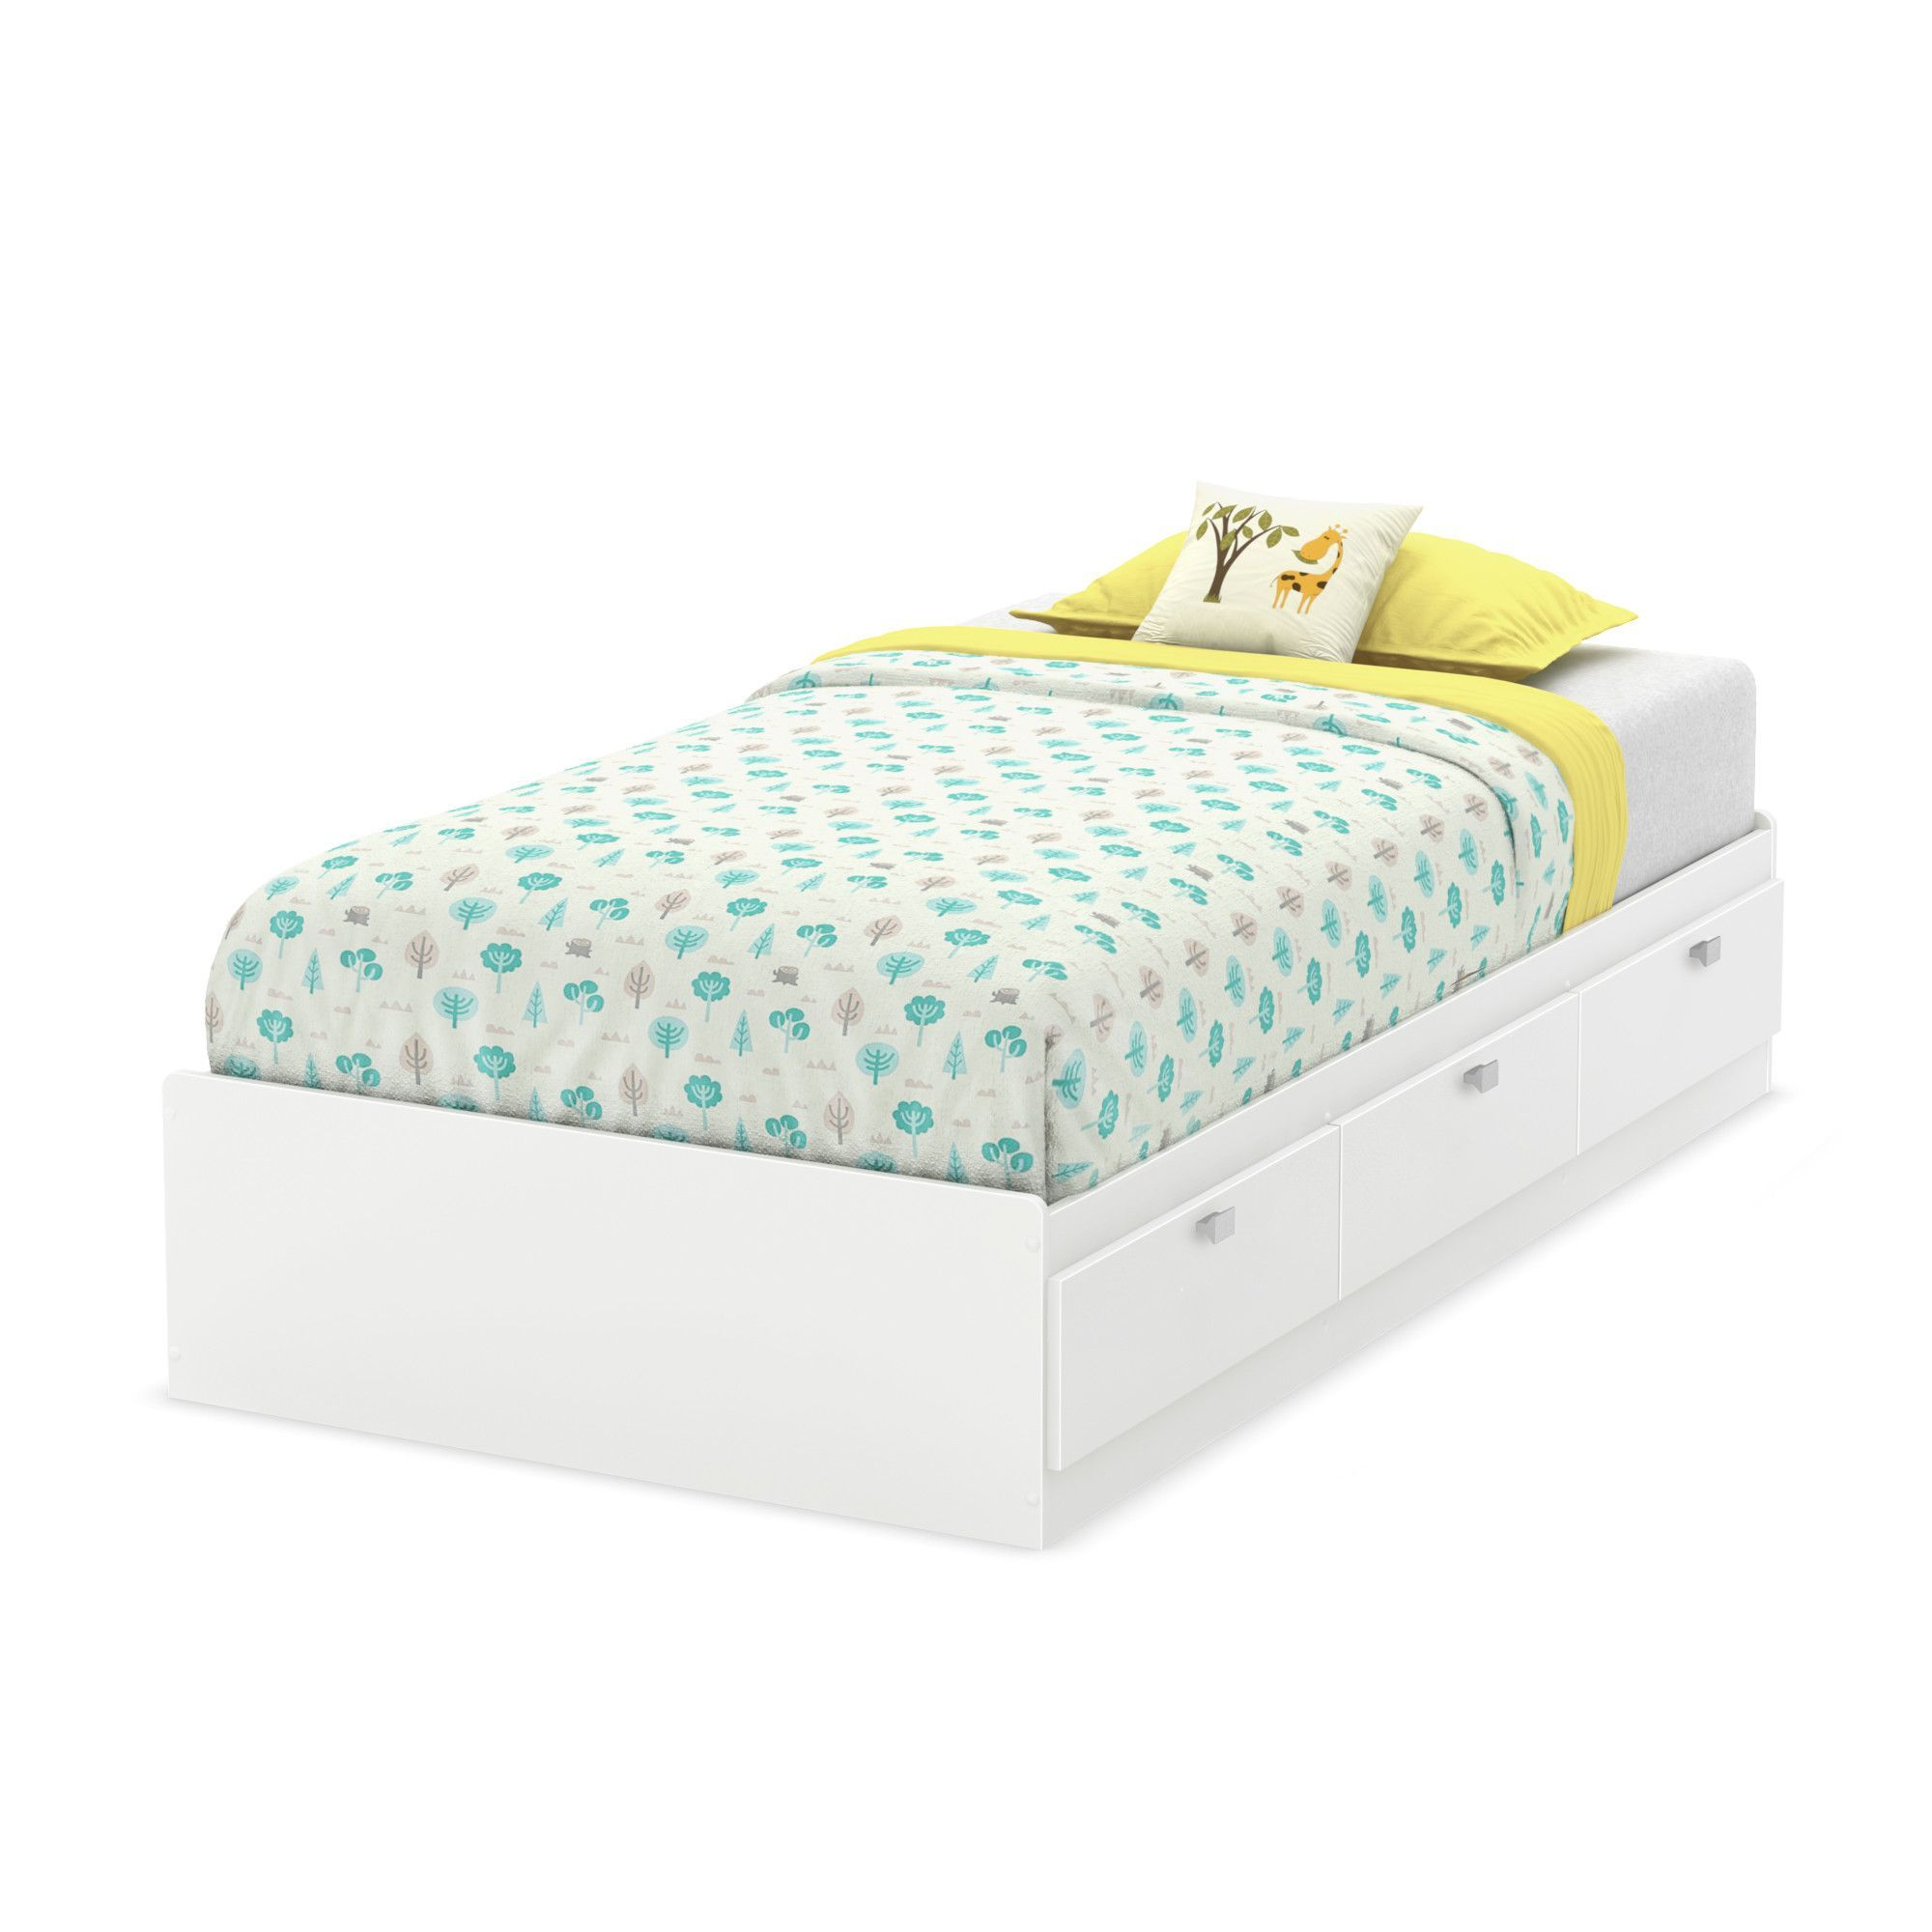 Karma Mate S Bed Box With Storage Kids Twin Bed Kid Beds Pure